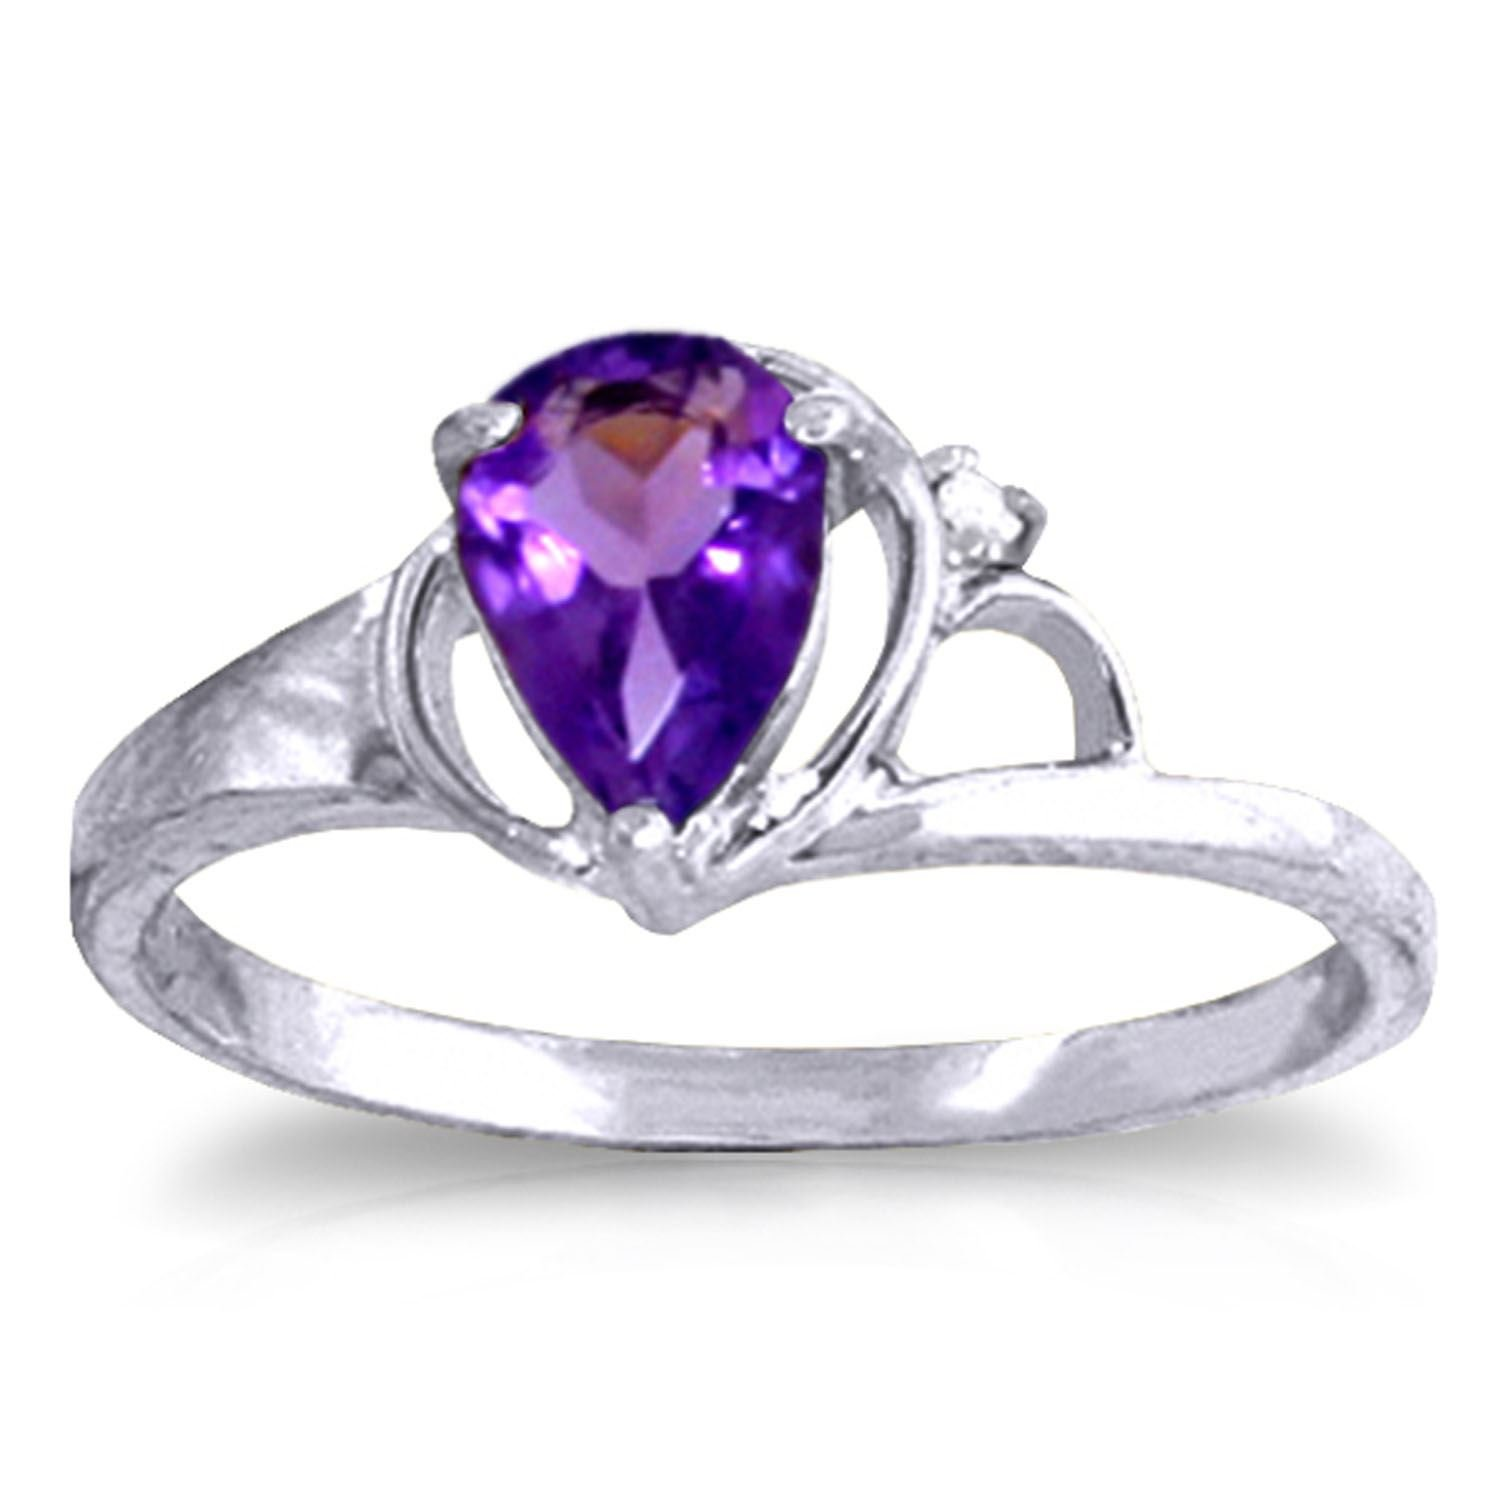 ALARRI 0.66 Carat 14K Solid White Gold Love Is Alive Amethyst Diamond Ring With Ring Size 11